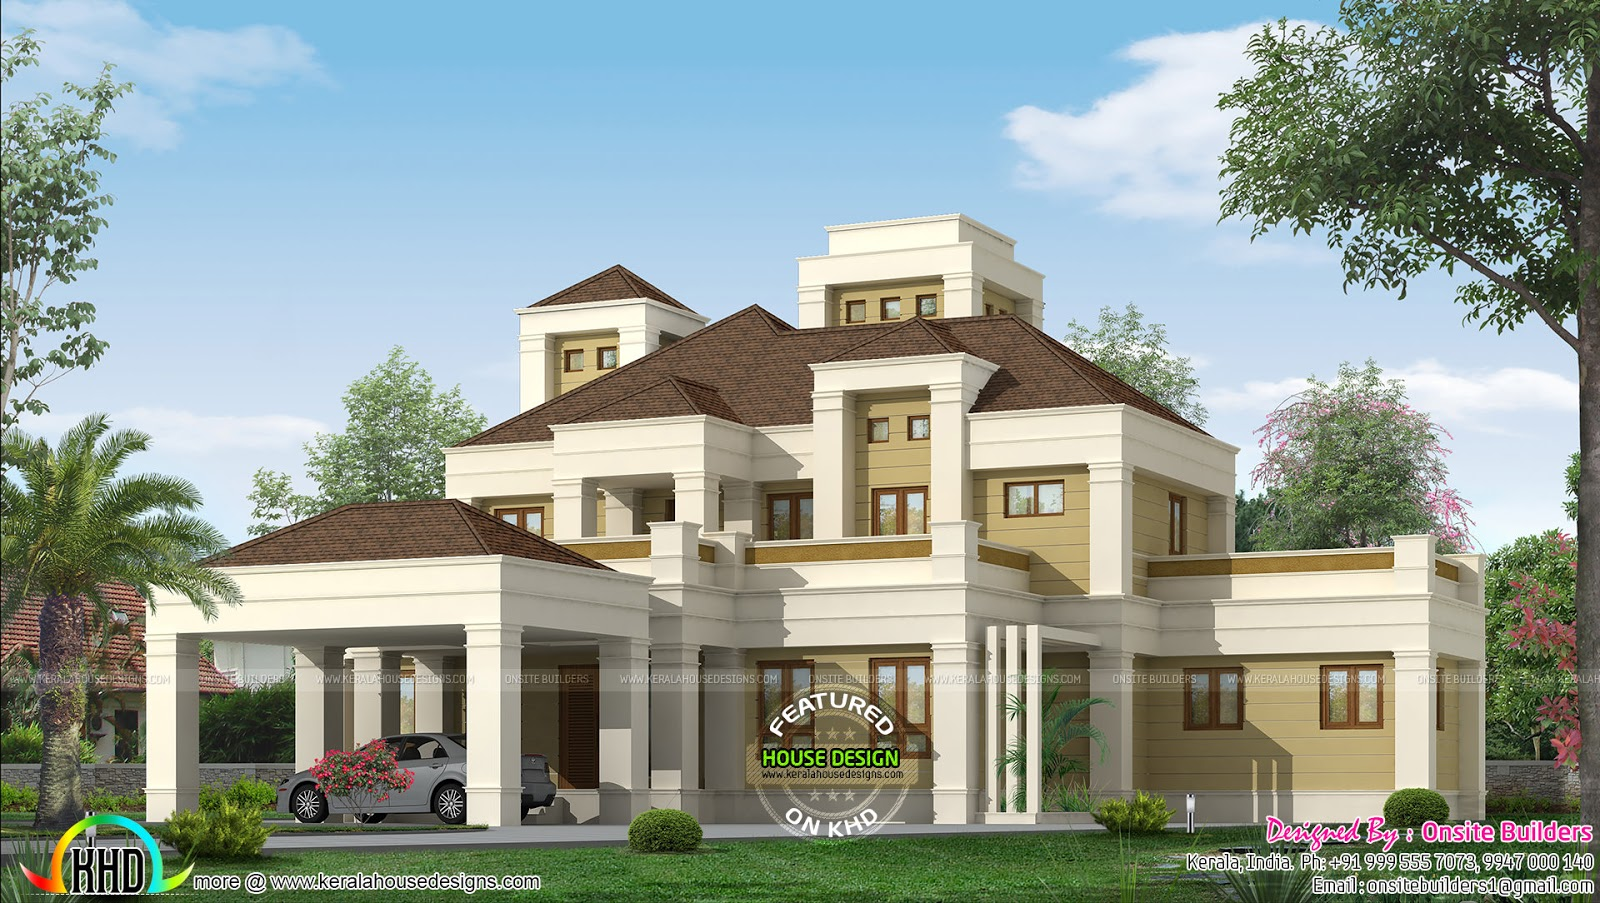 Elegant colonial home plan kerala home design and floor Elegant farmhouse plans